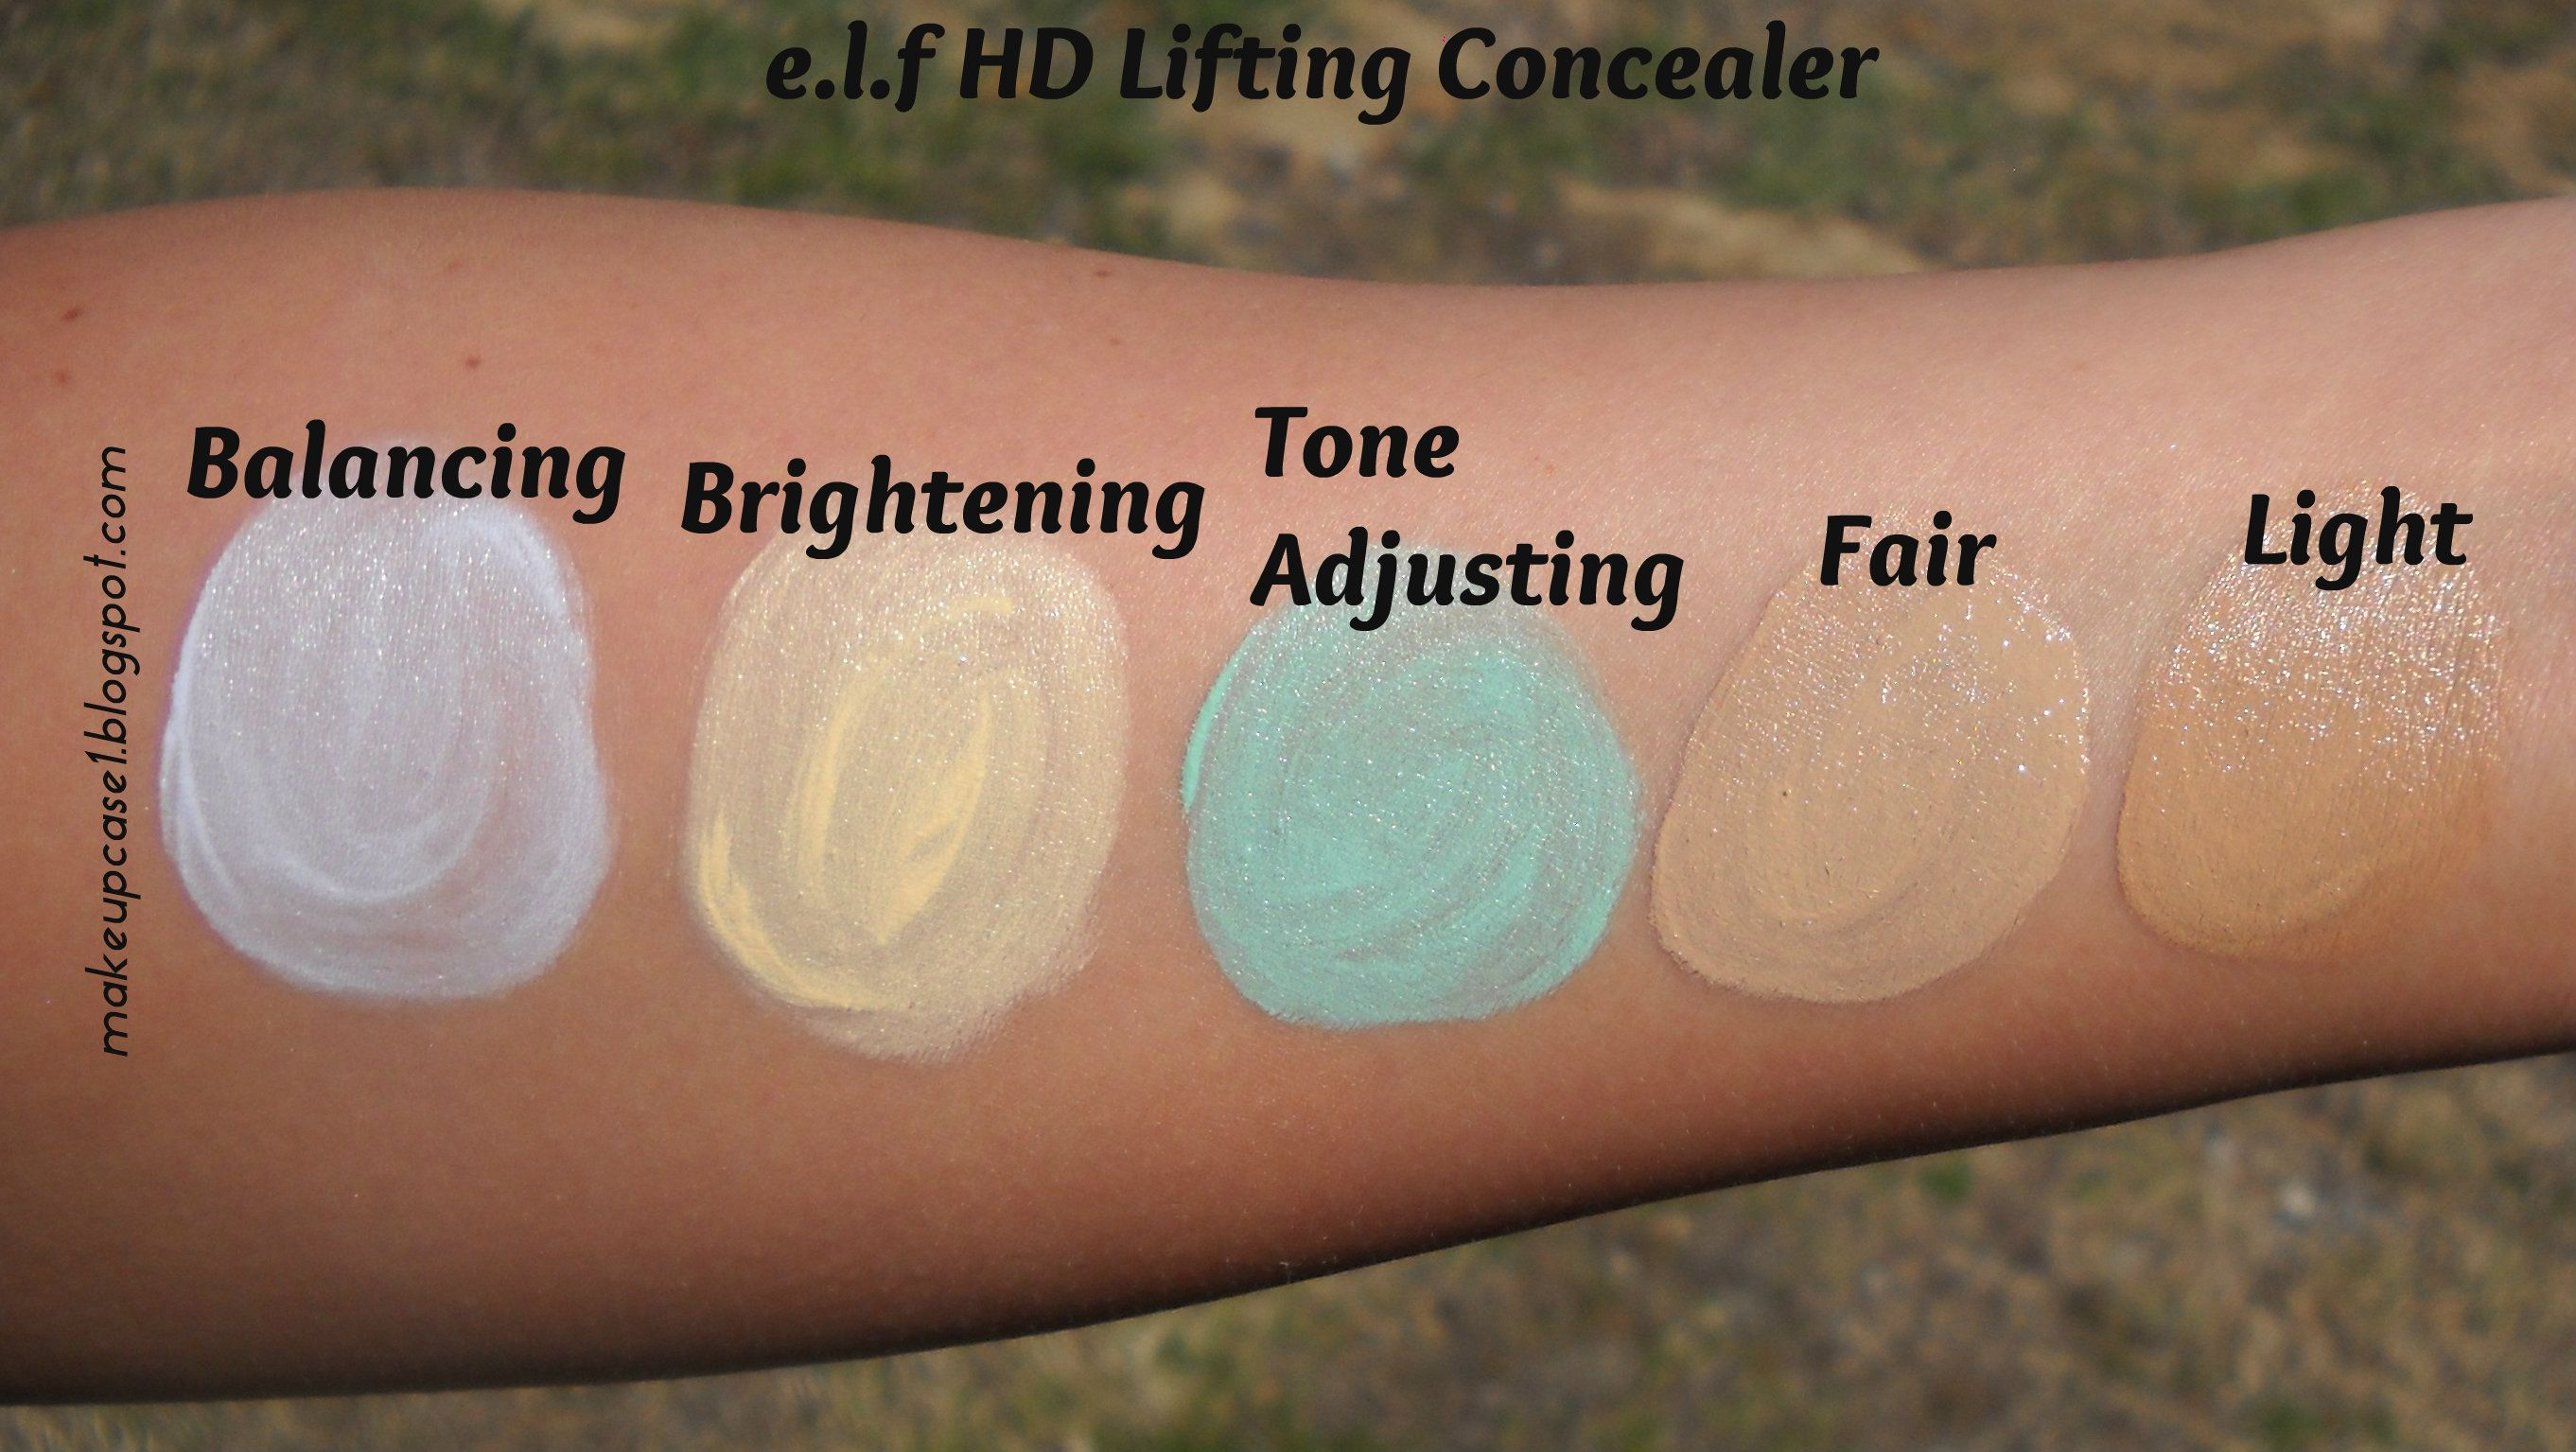 HD Lifting Concealer by e.l.f. #14